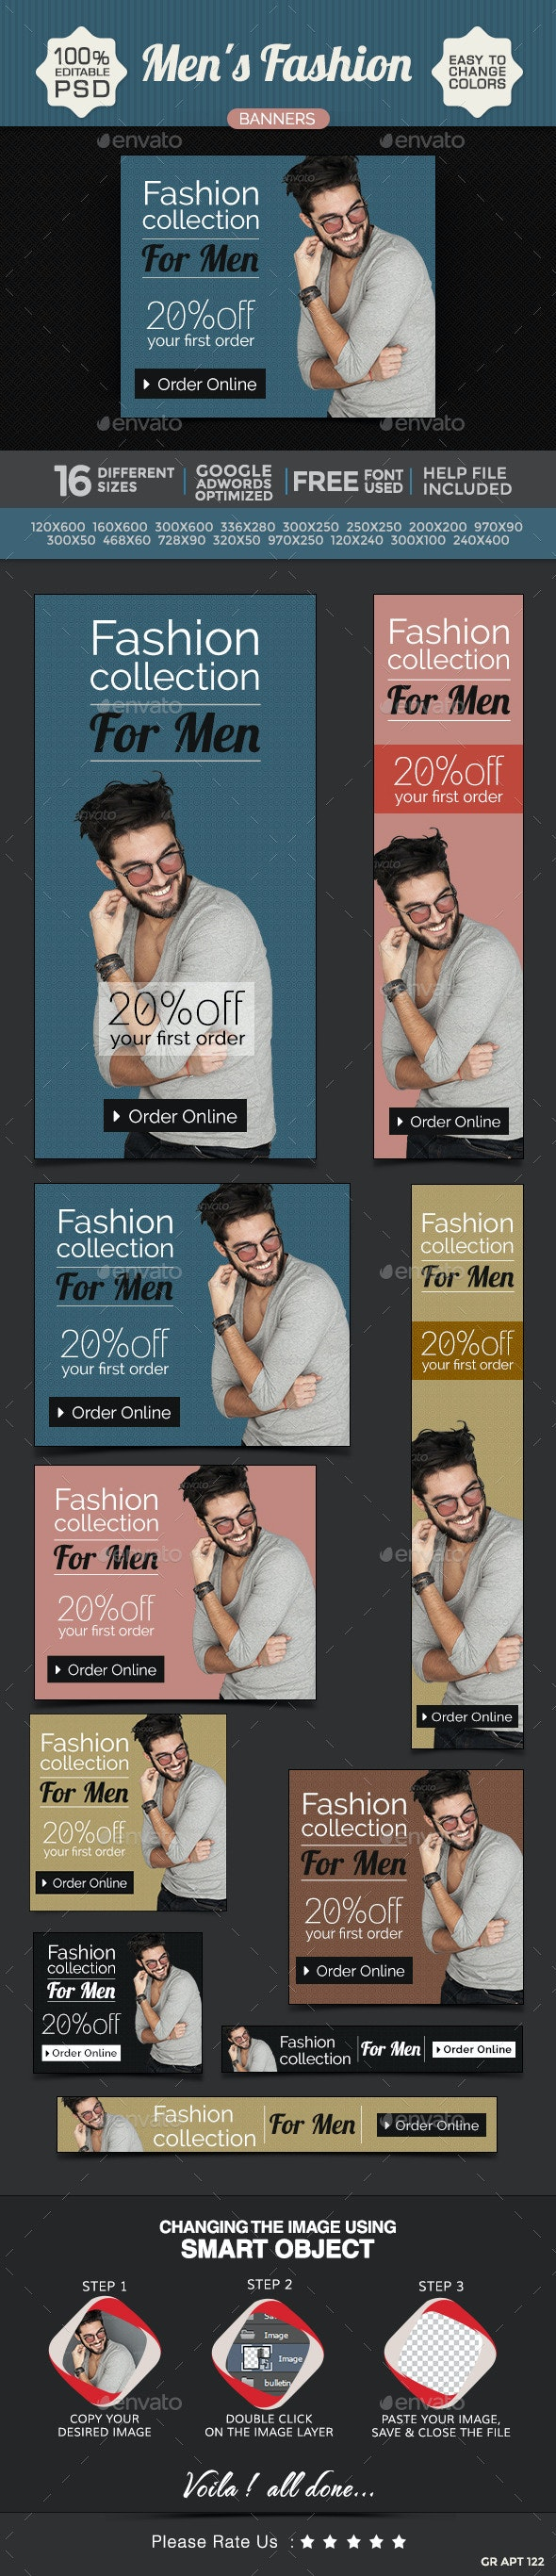 Fashion for Men Banners - Banners & Ads Web Elements